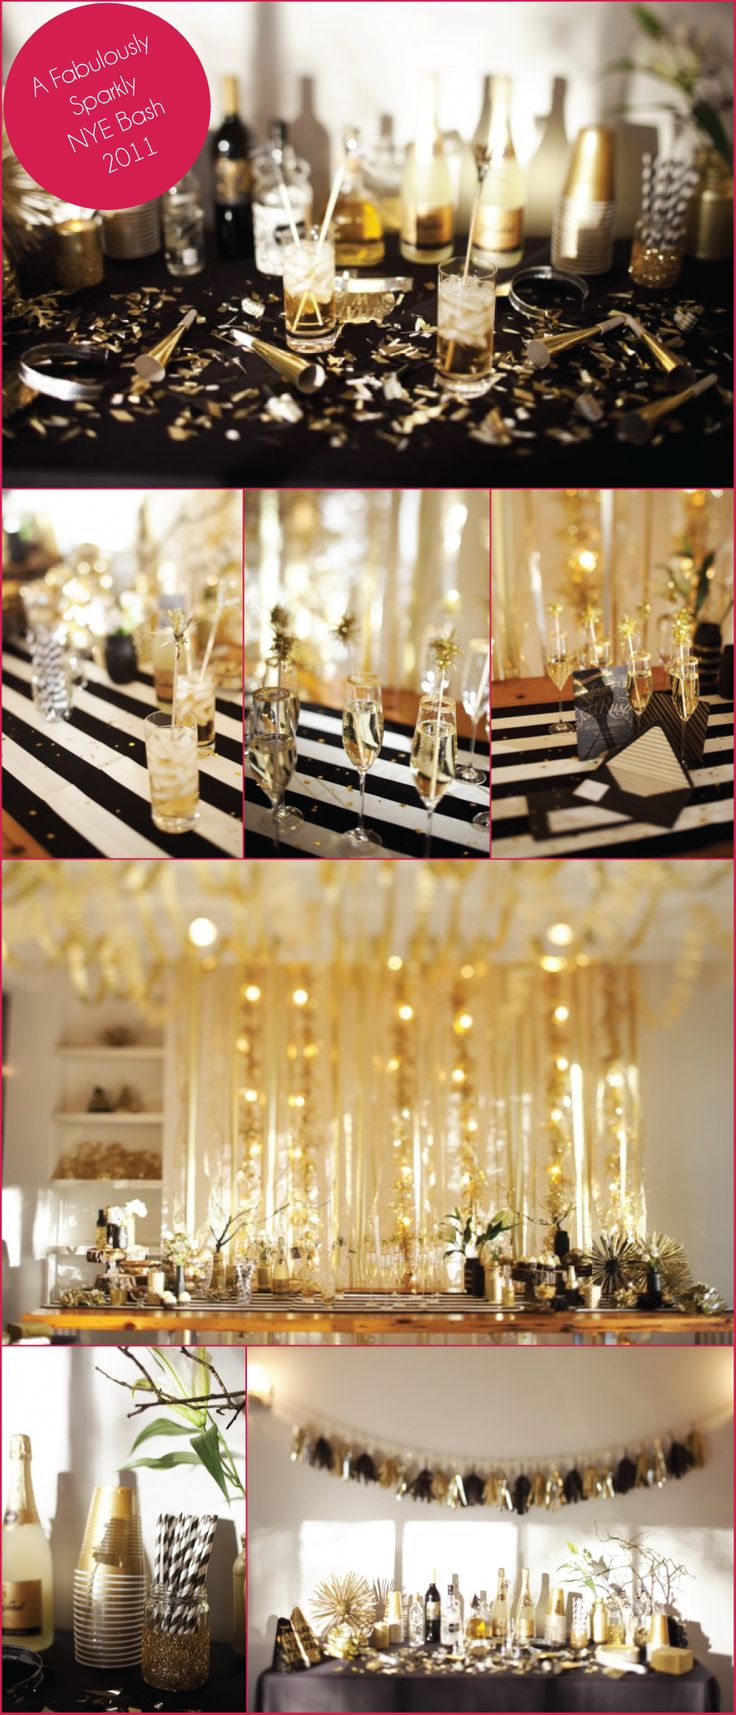 Amazing Black and Gold New Year Bash... love the color scheme for any party: Gold Color Schemes, Black And Gold Birthday Party, Black White Gold 30 Bash, Black Gold Stremmer, Black Gold Party, Black And Gold New Years, Birthday Black White Gold, Amazing Black, 30Th Birthday Black And Gold